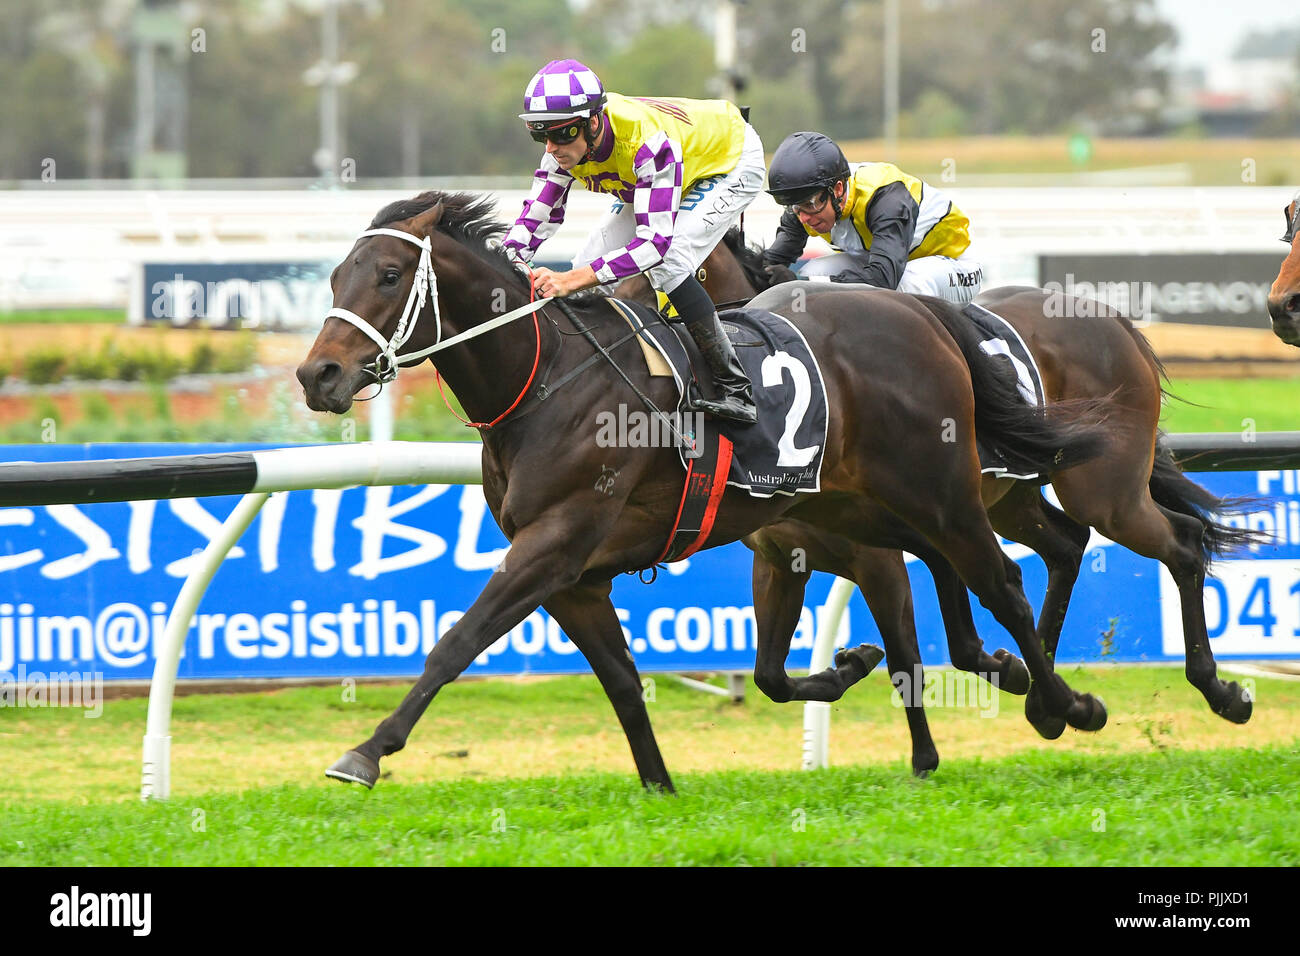 Sydney, Australia. 08 Sep 2018. Jockey Tye Angland rides Lean Mean Machine to victory in race 6, the The Run To The Rose, during Run To The Rose Race Day at the Rosehill Gardens Racecourse, Sydney, Australia. Credit: Rafal Kontrym/Alamy Live News. - Stock Image